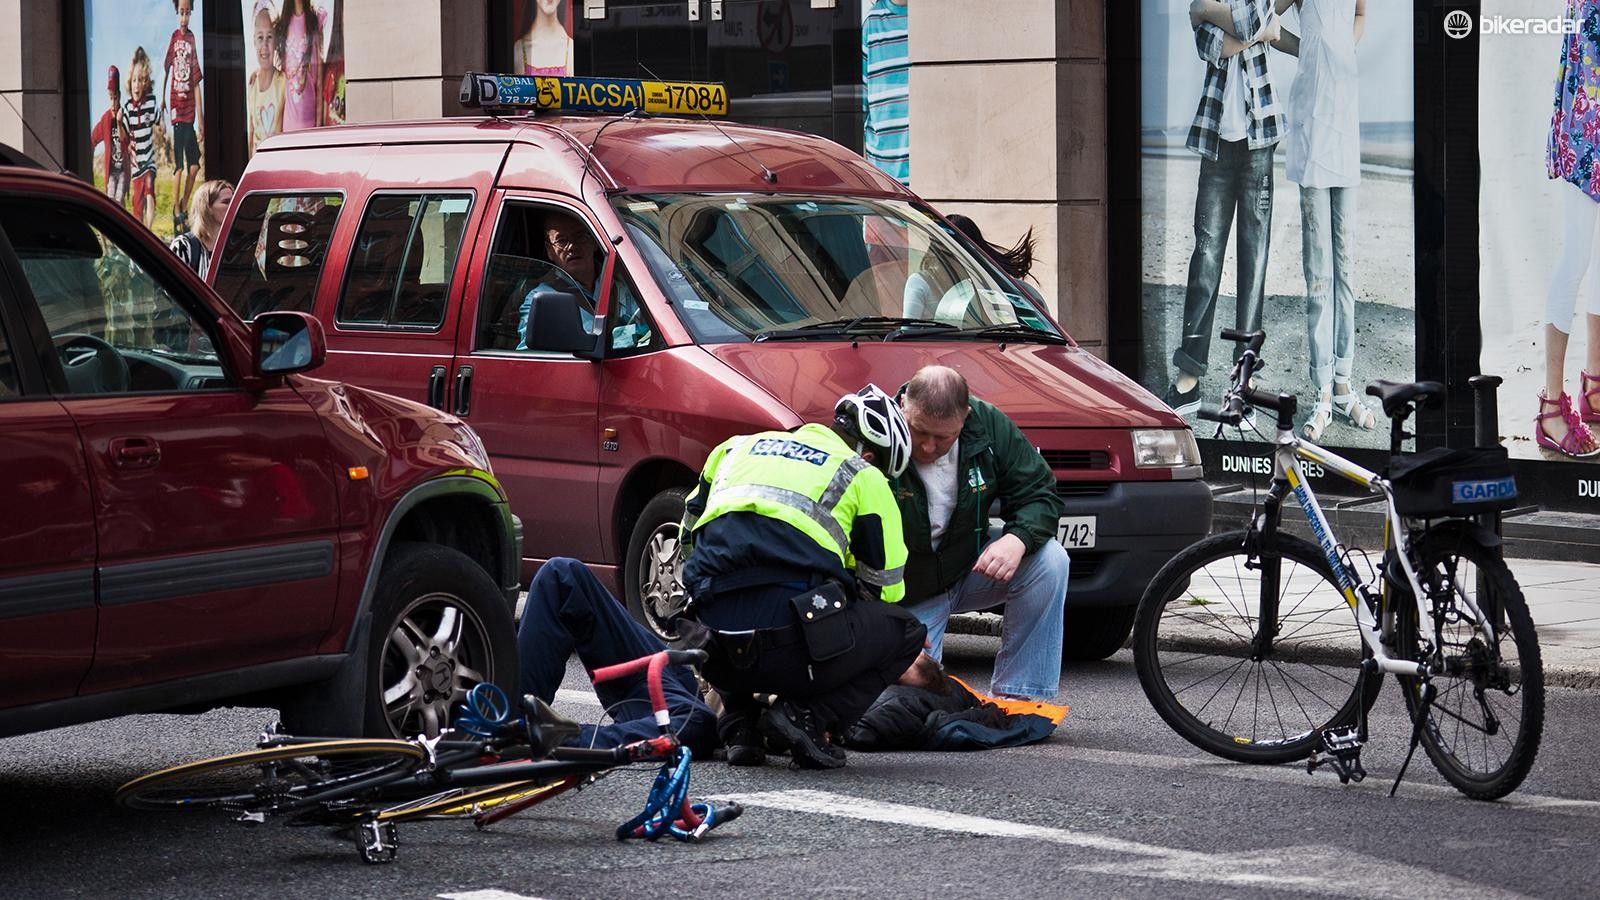 If you see a crash or altercation between a motorist and cyclist report what you saw to the authorities and exchange information